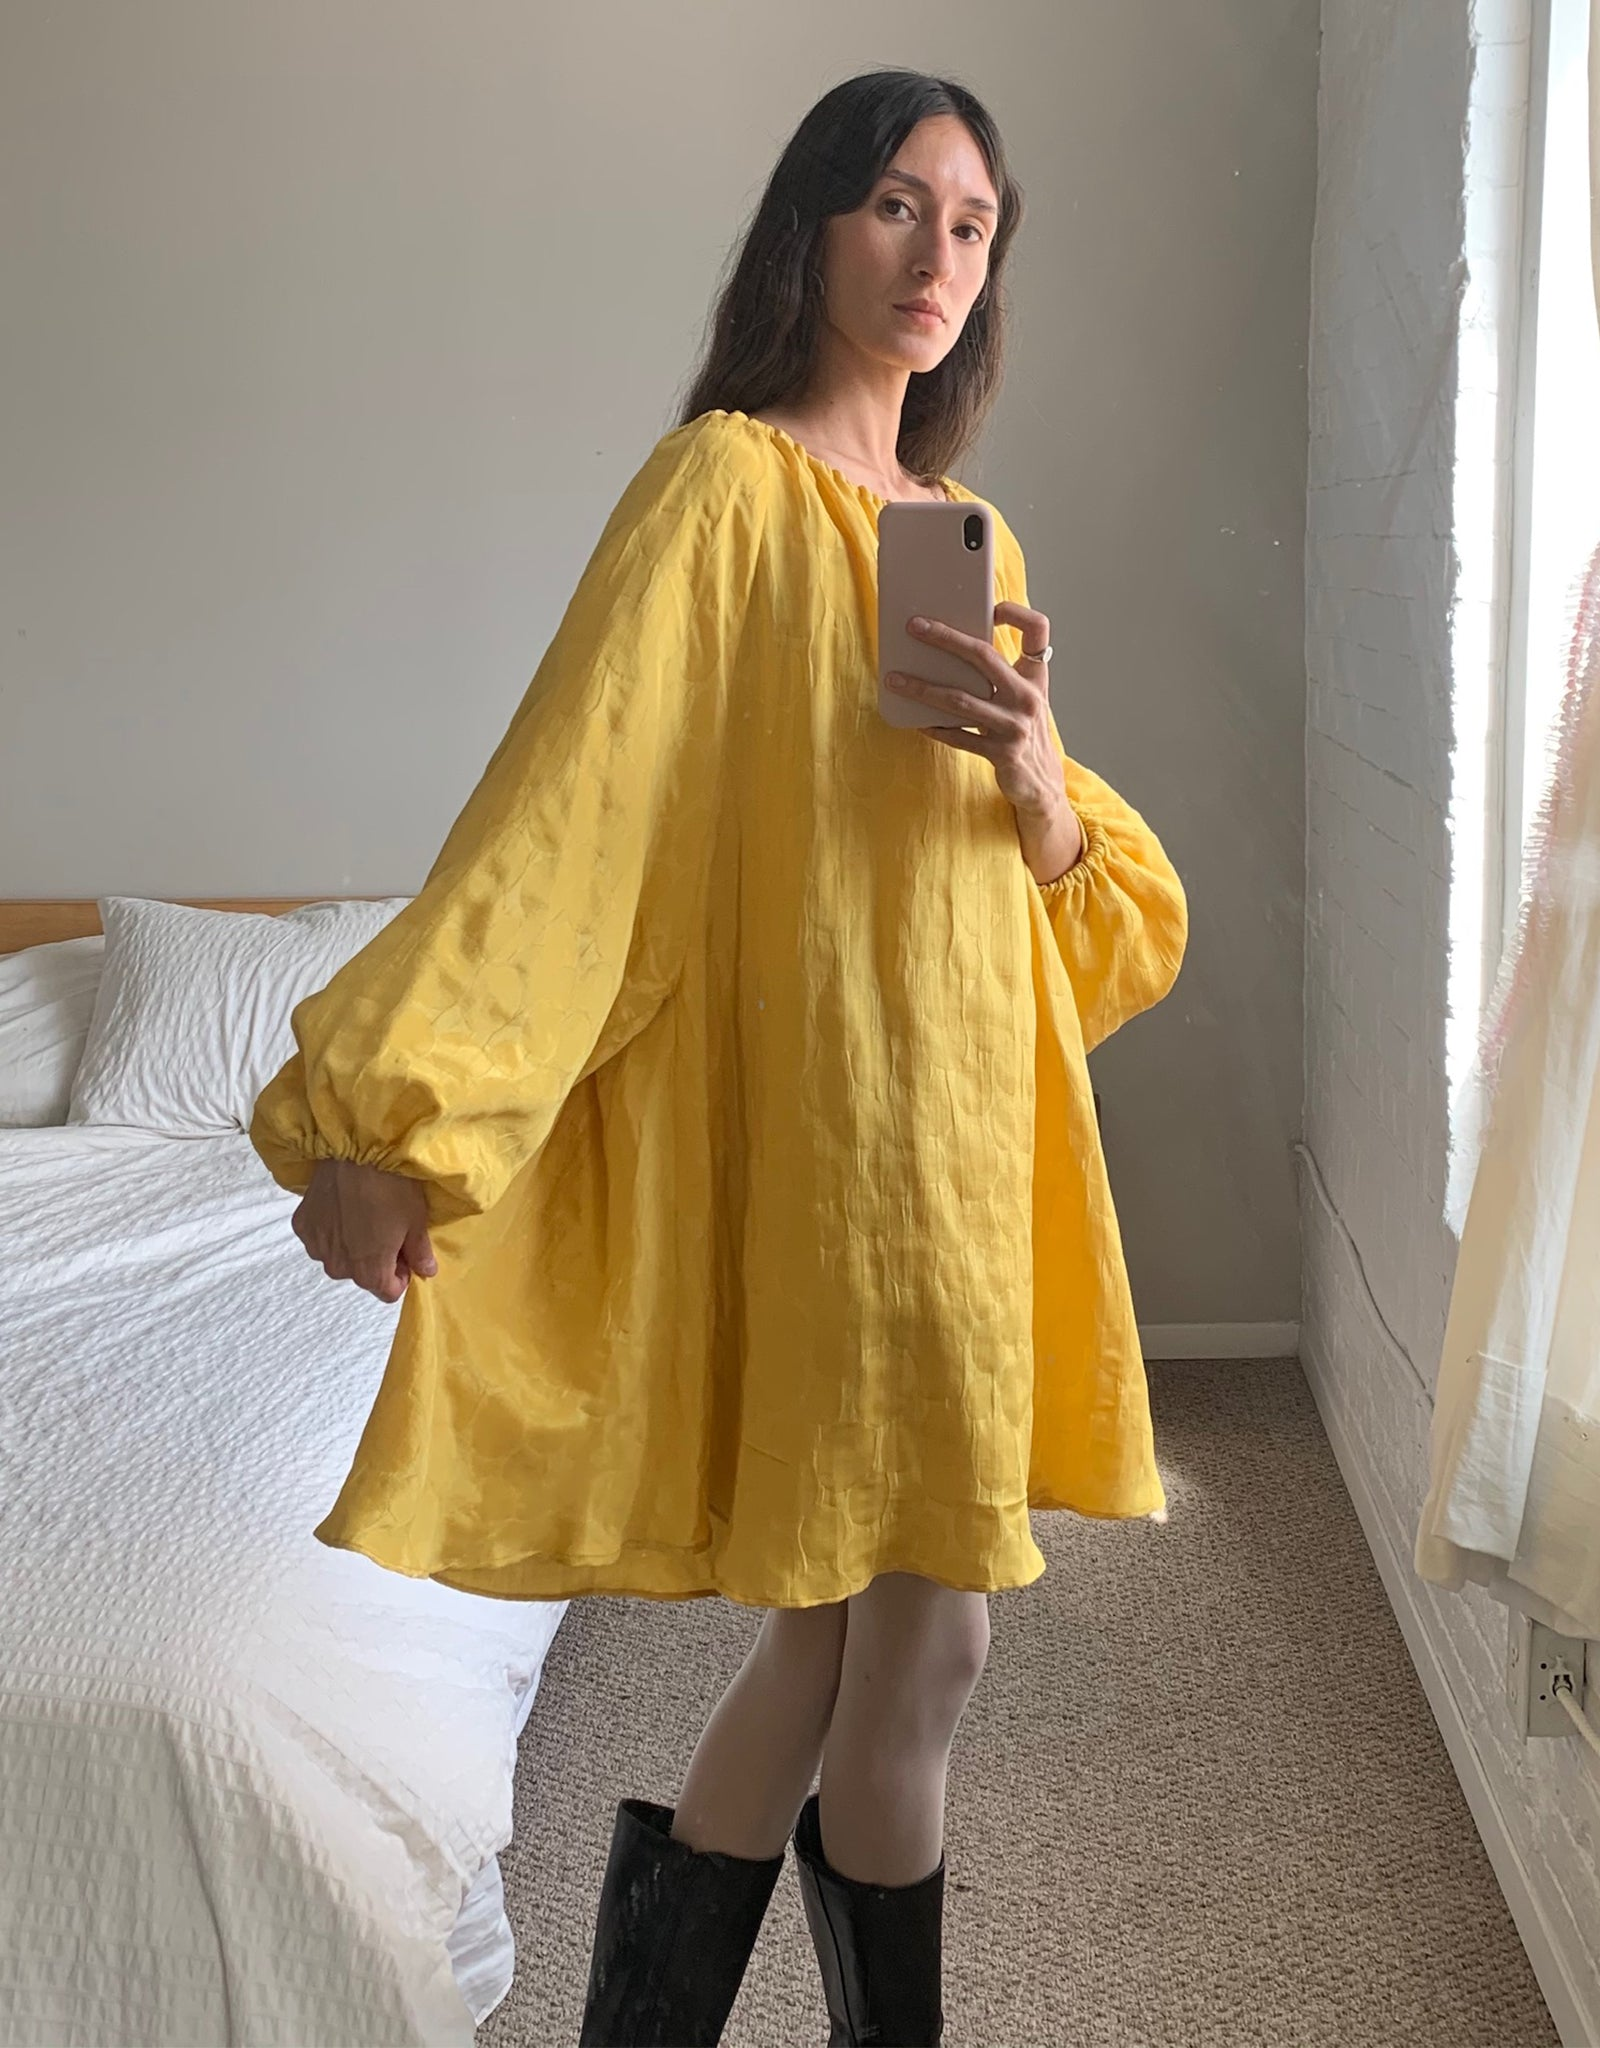 Golden Yellow Silk Autumn Sun Dress by Local Woman, on model. Available at EASE Toronto.